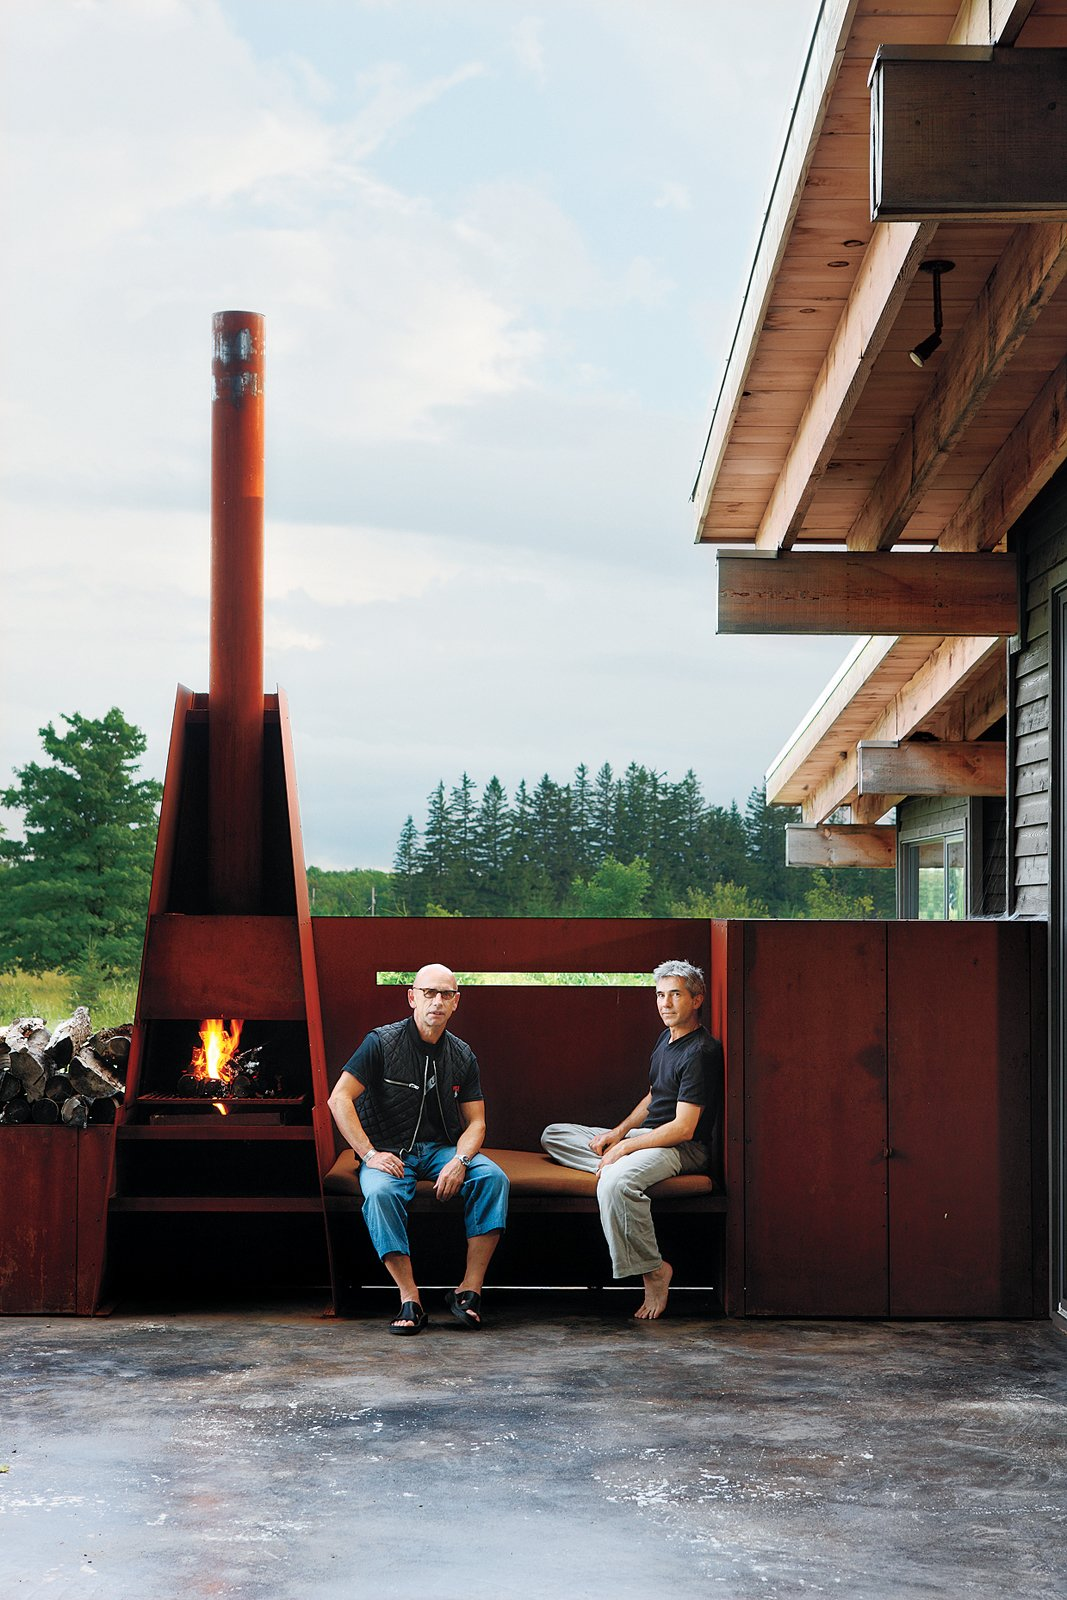 """Metals broker S. J. Sherbanuk (left) and designer James Campbell (right) created a new home in Collingwood, Ontario, with old scrap. """"Repurpose, refurbish, recycle"""" was the guiding principle for the project.  97+ Modern Fireplace Ideas by Dwell from Seven Great Outdoor Spaces"""